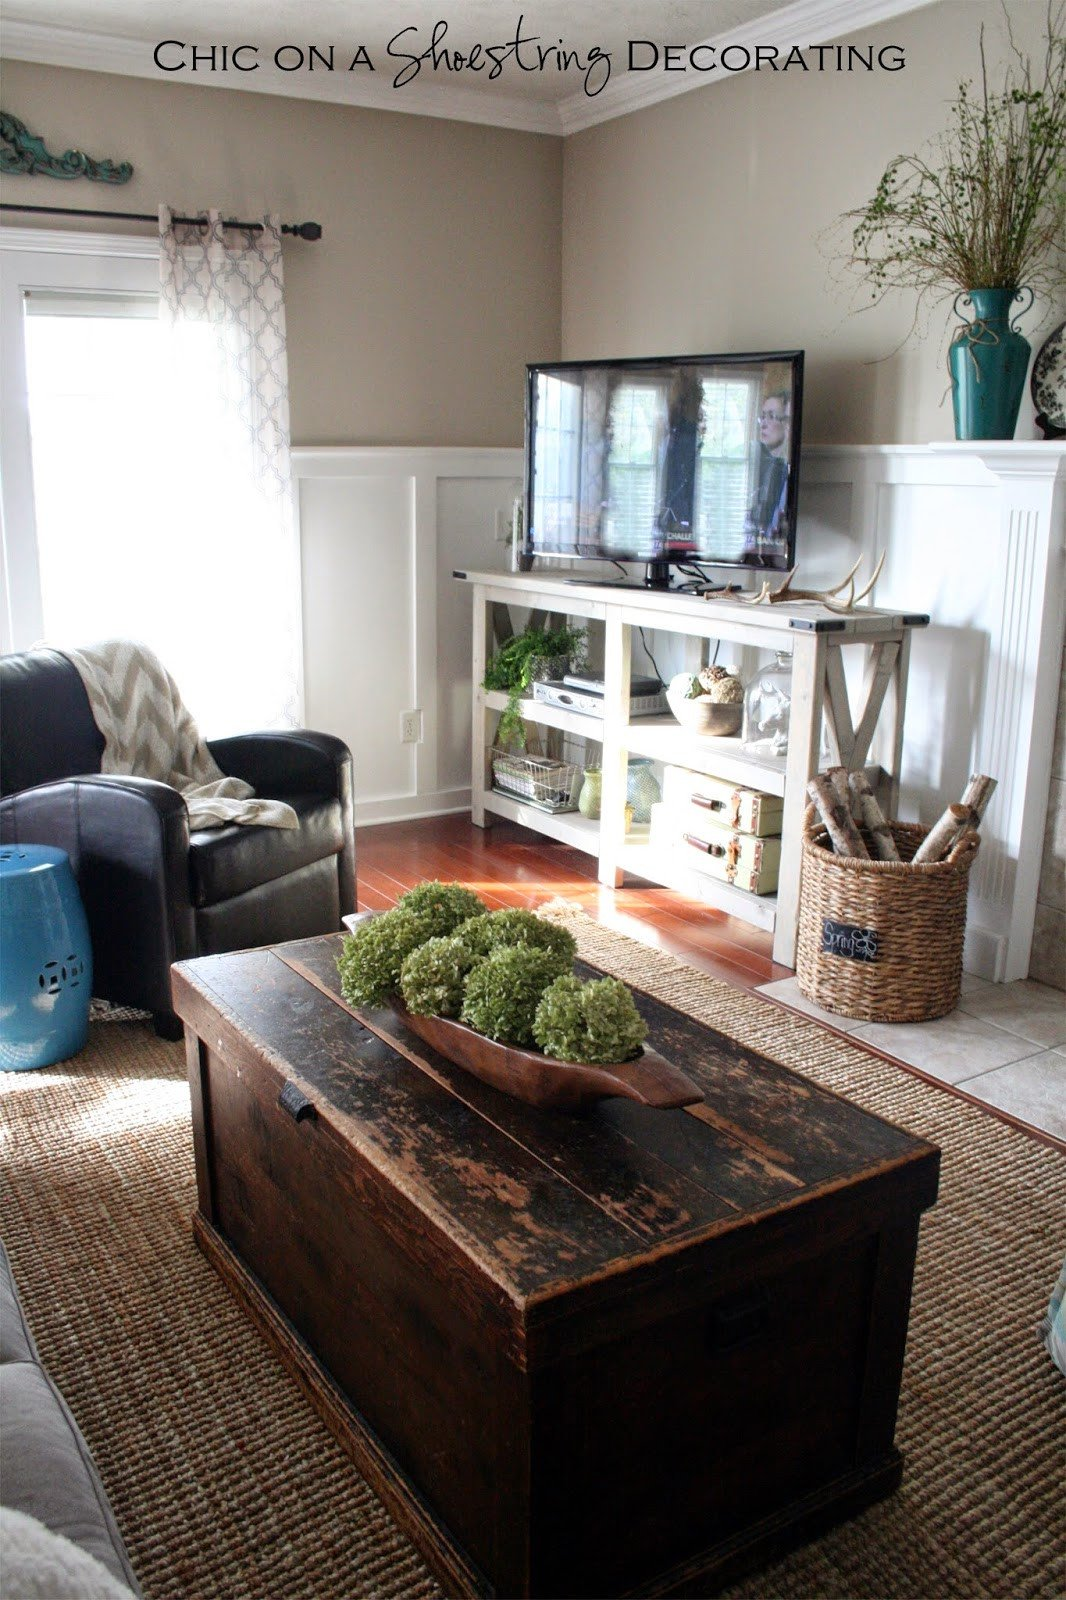 Farmhouse Tv Stand Design Ideas and Decor Lovely Chic On A Shoestring Decorating My Farmhouse Chic Living Room Reveal